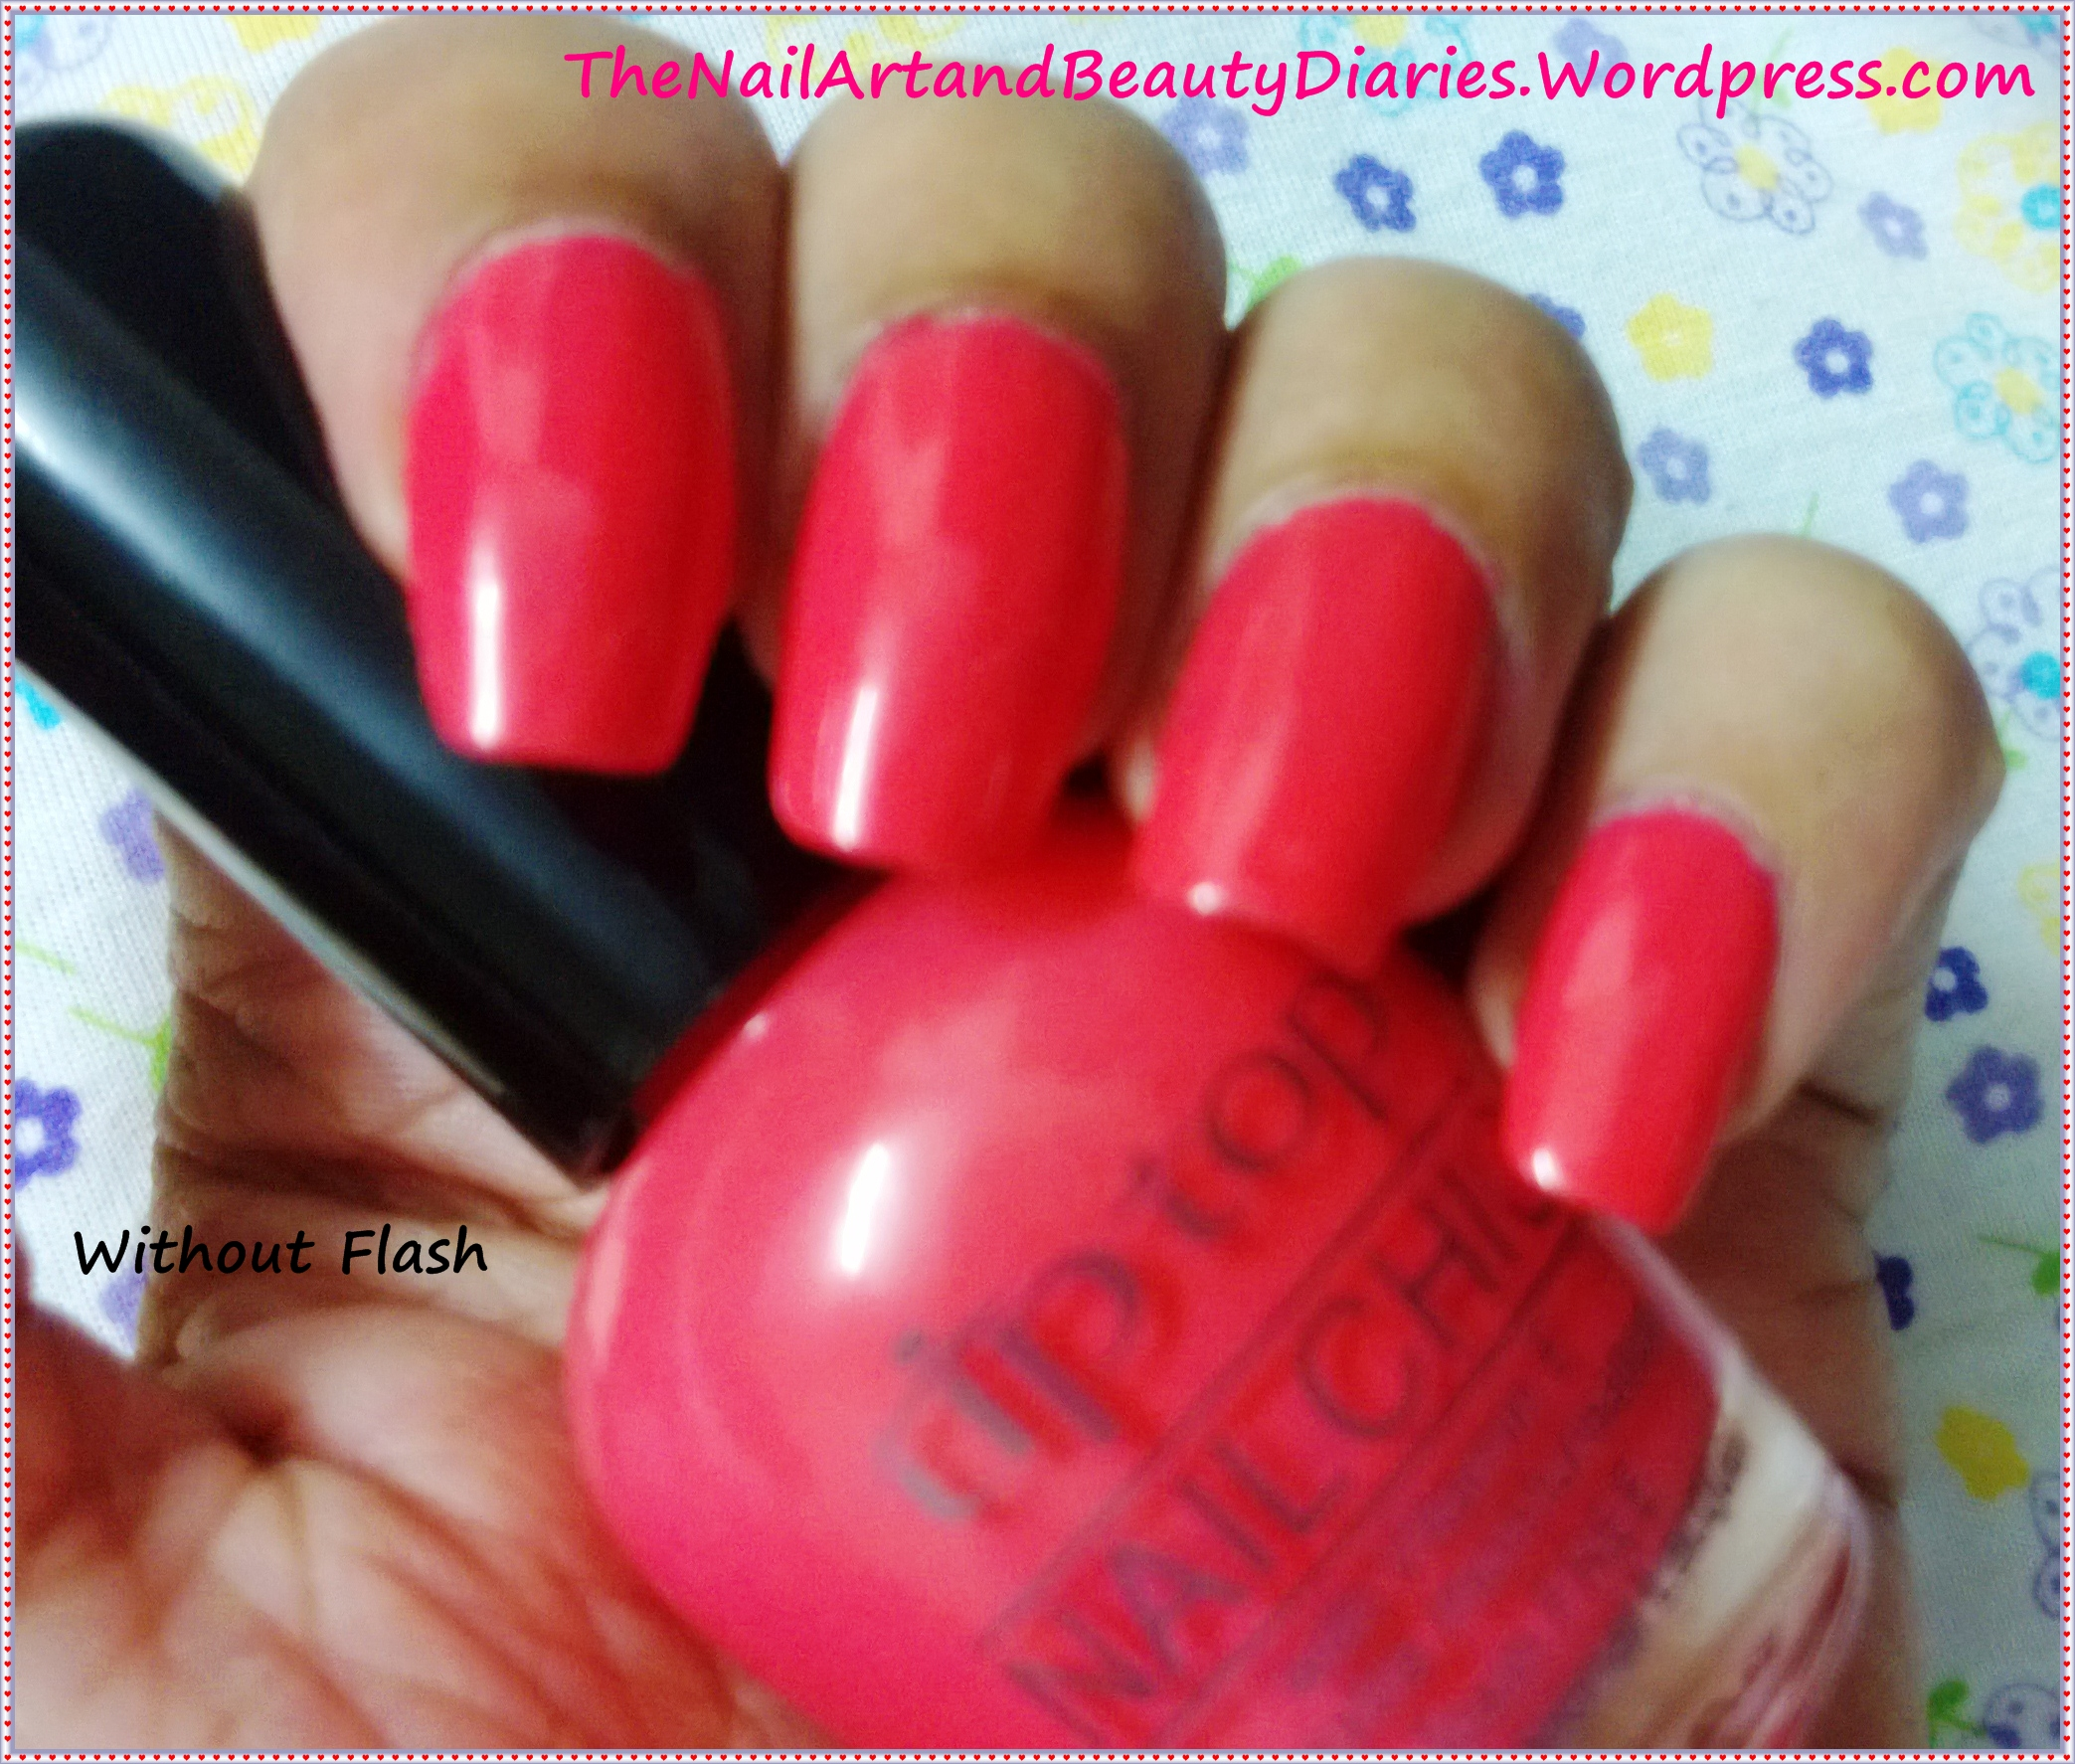 The Nail Art And Beauty Diaries: Tip Top Creamy Orange Nail Polish Review